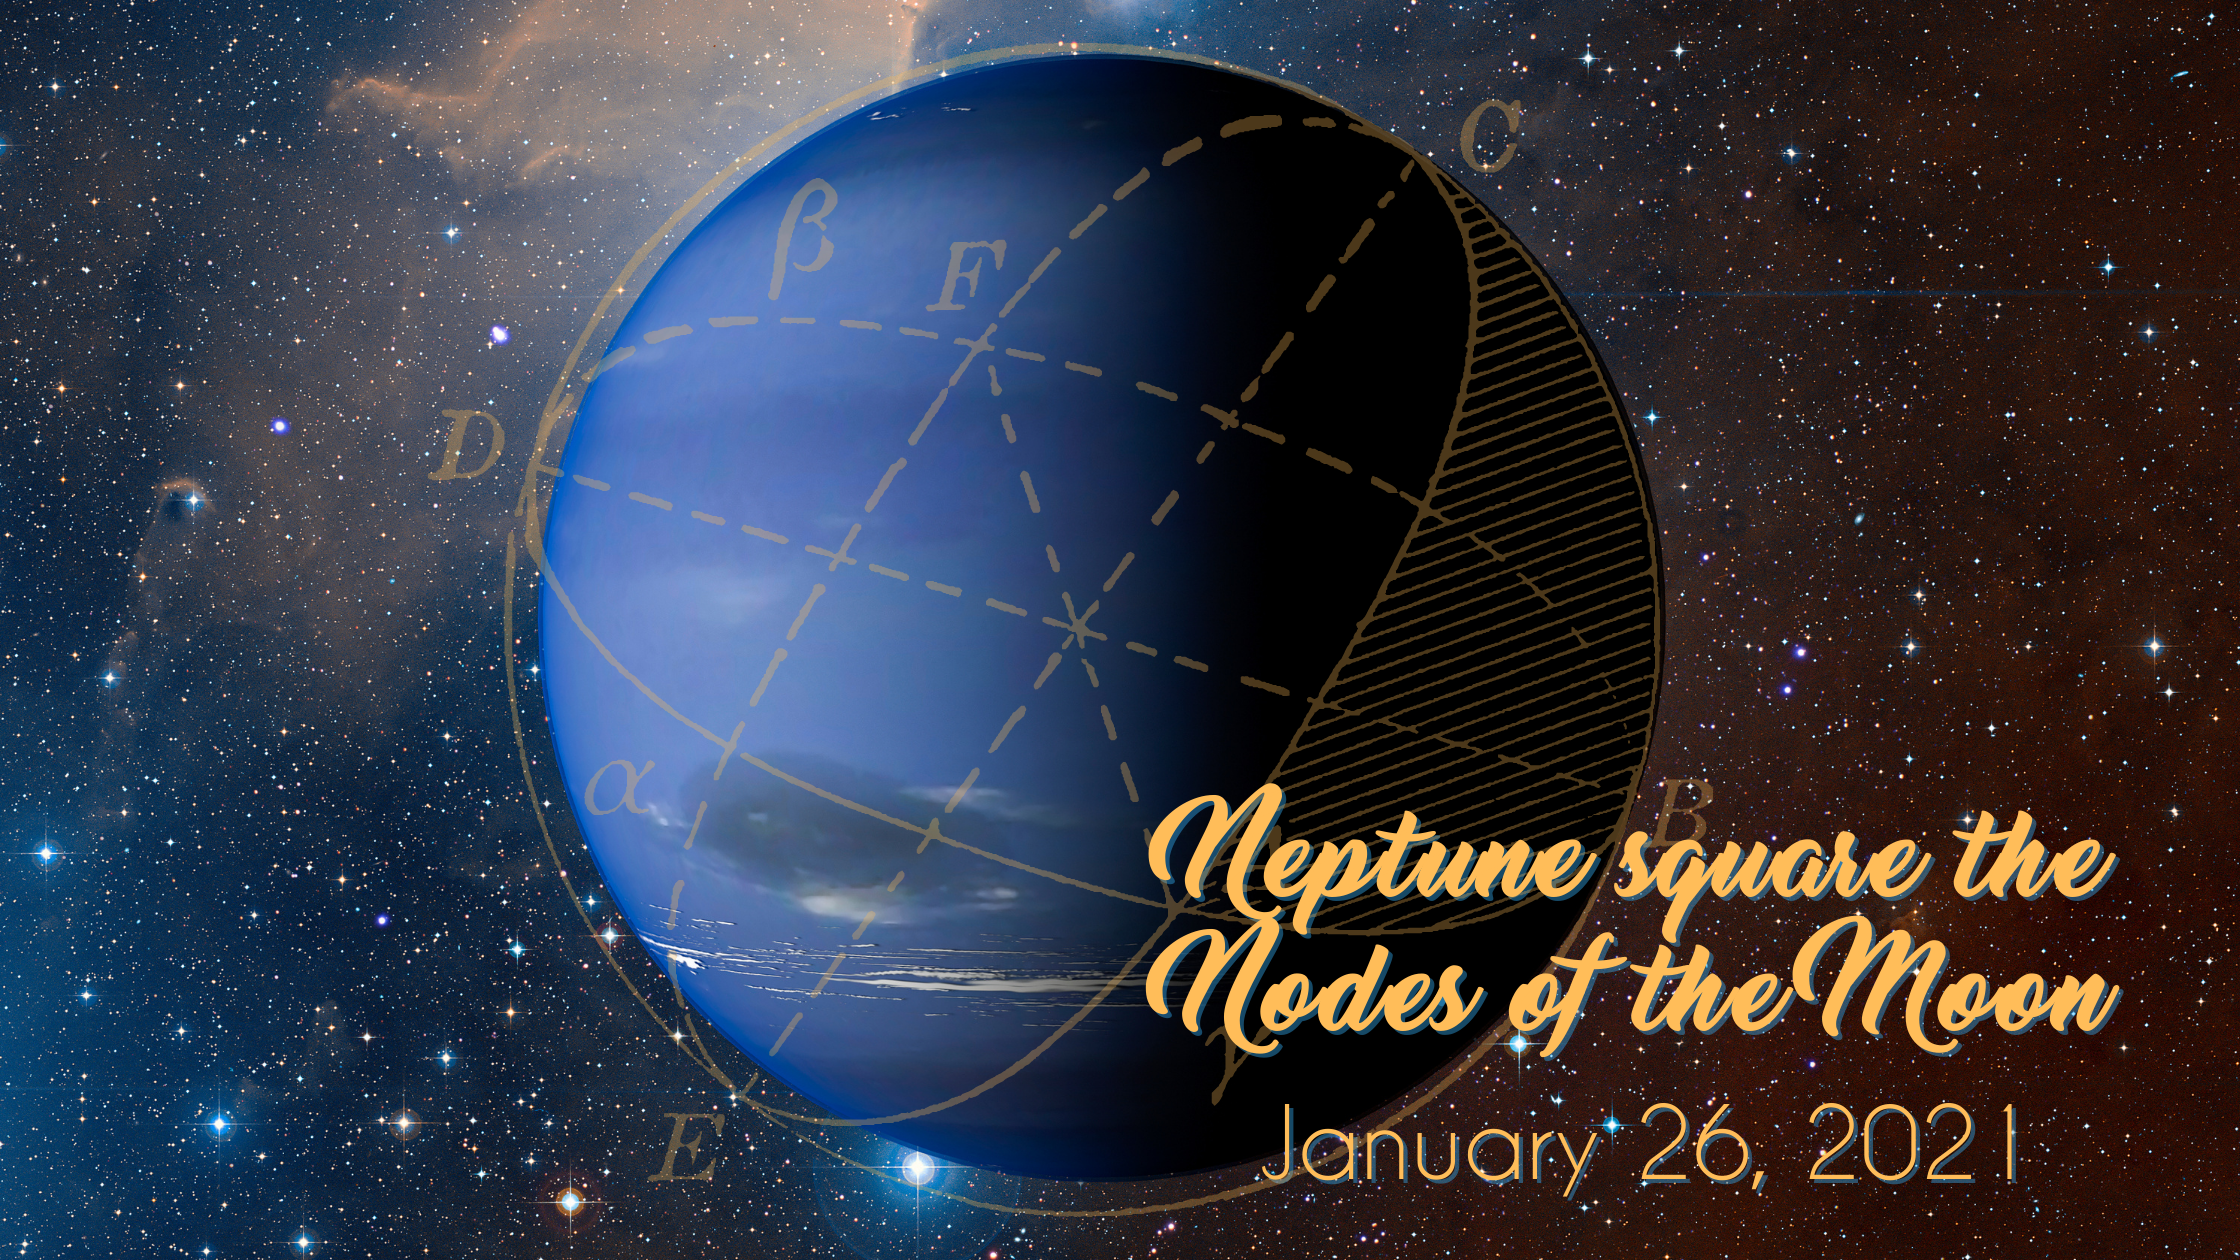 Neptune square the Nodes of the Moon  – January 26, 2021